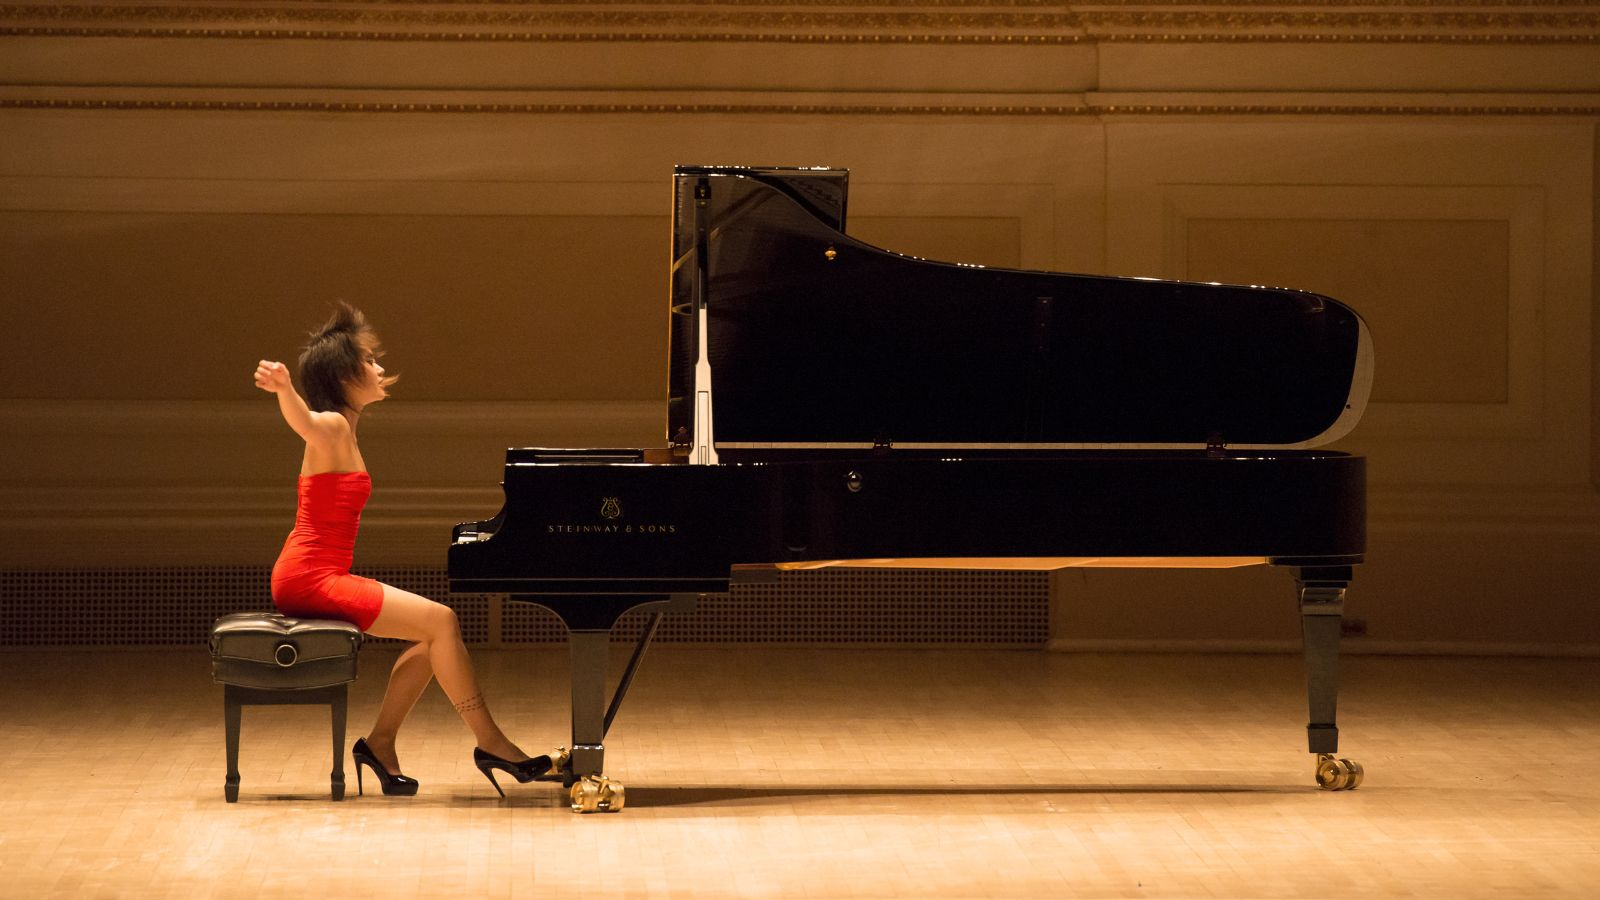 Yuja Wang performing on a Steinway grand piano